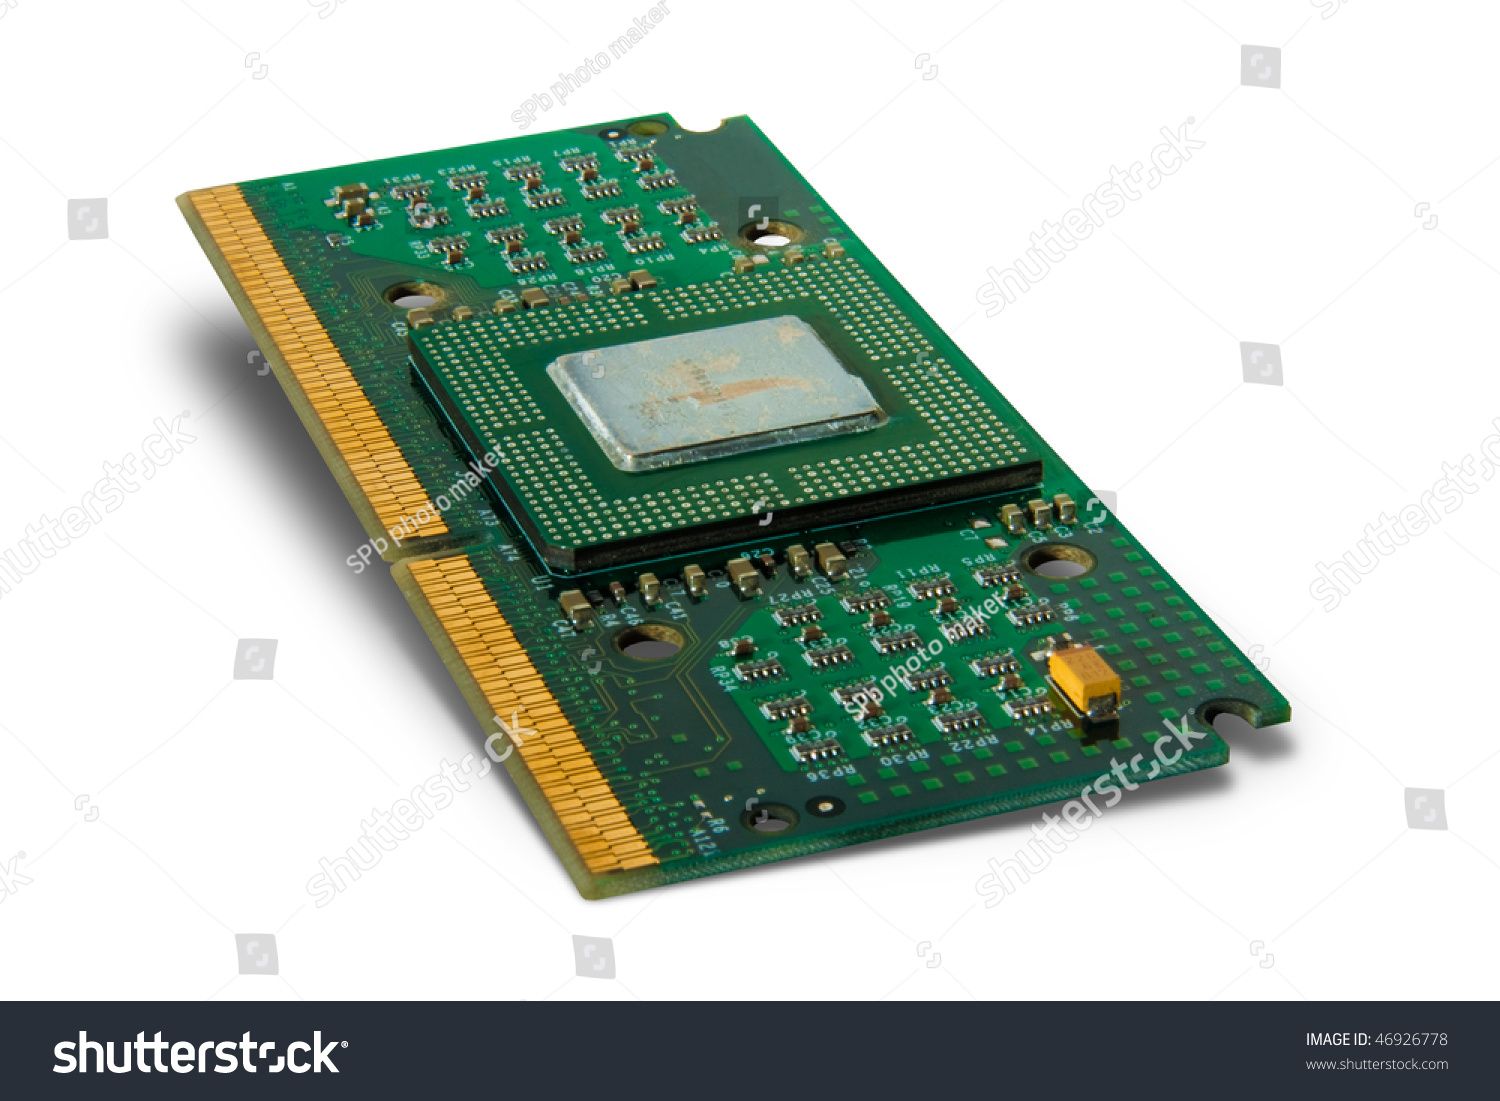 Photo Of Processor Memory Plate Ez Canvas Computer Ram Chips With Binary Code A Circuit Board